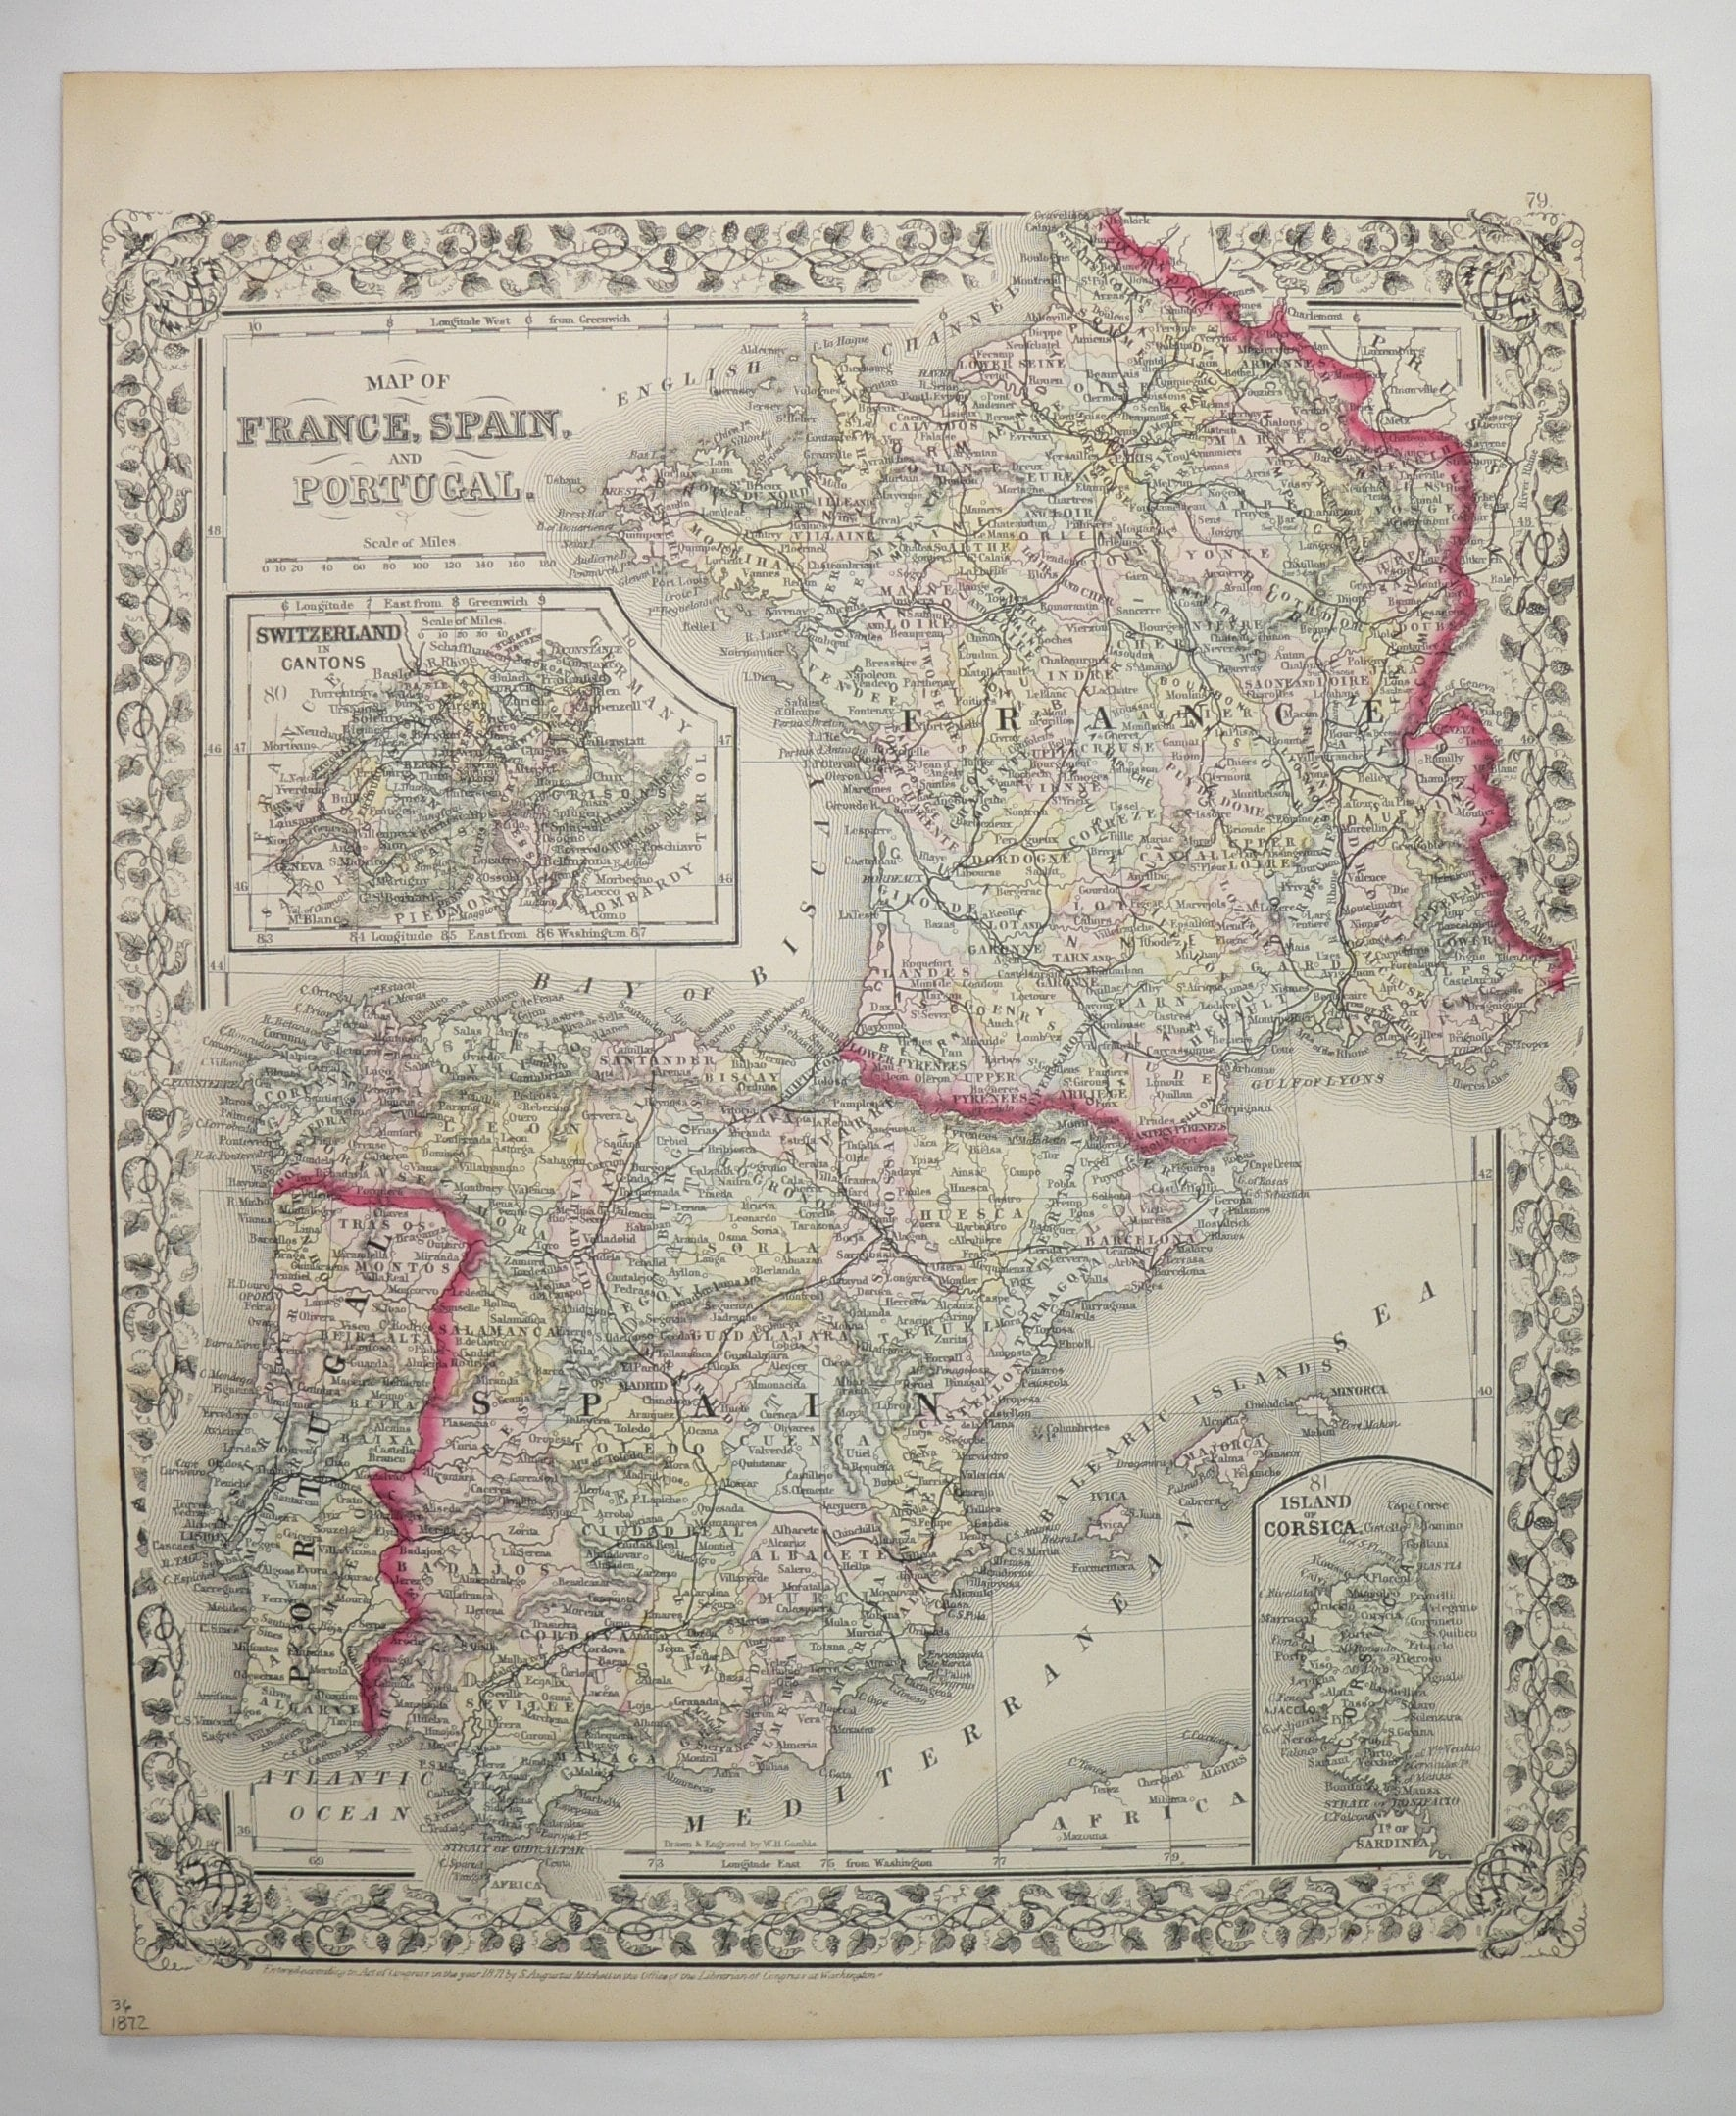 Map Of Spain Portugal And France.1872 Mitchell Map Of France Spain Map Portugal Europe Travel Map Wanderlust Gift Old France Map Spain Portugal Map France Gift For Her